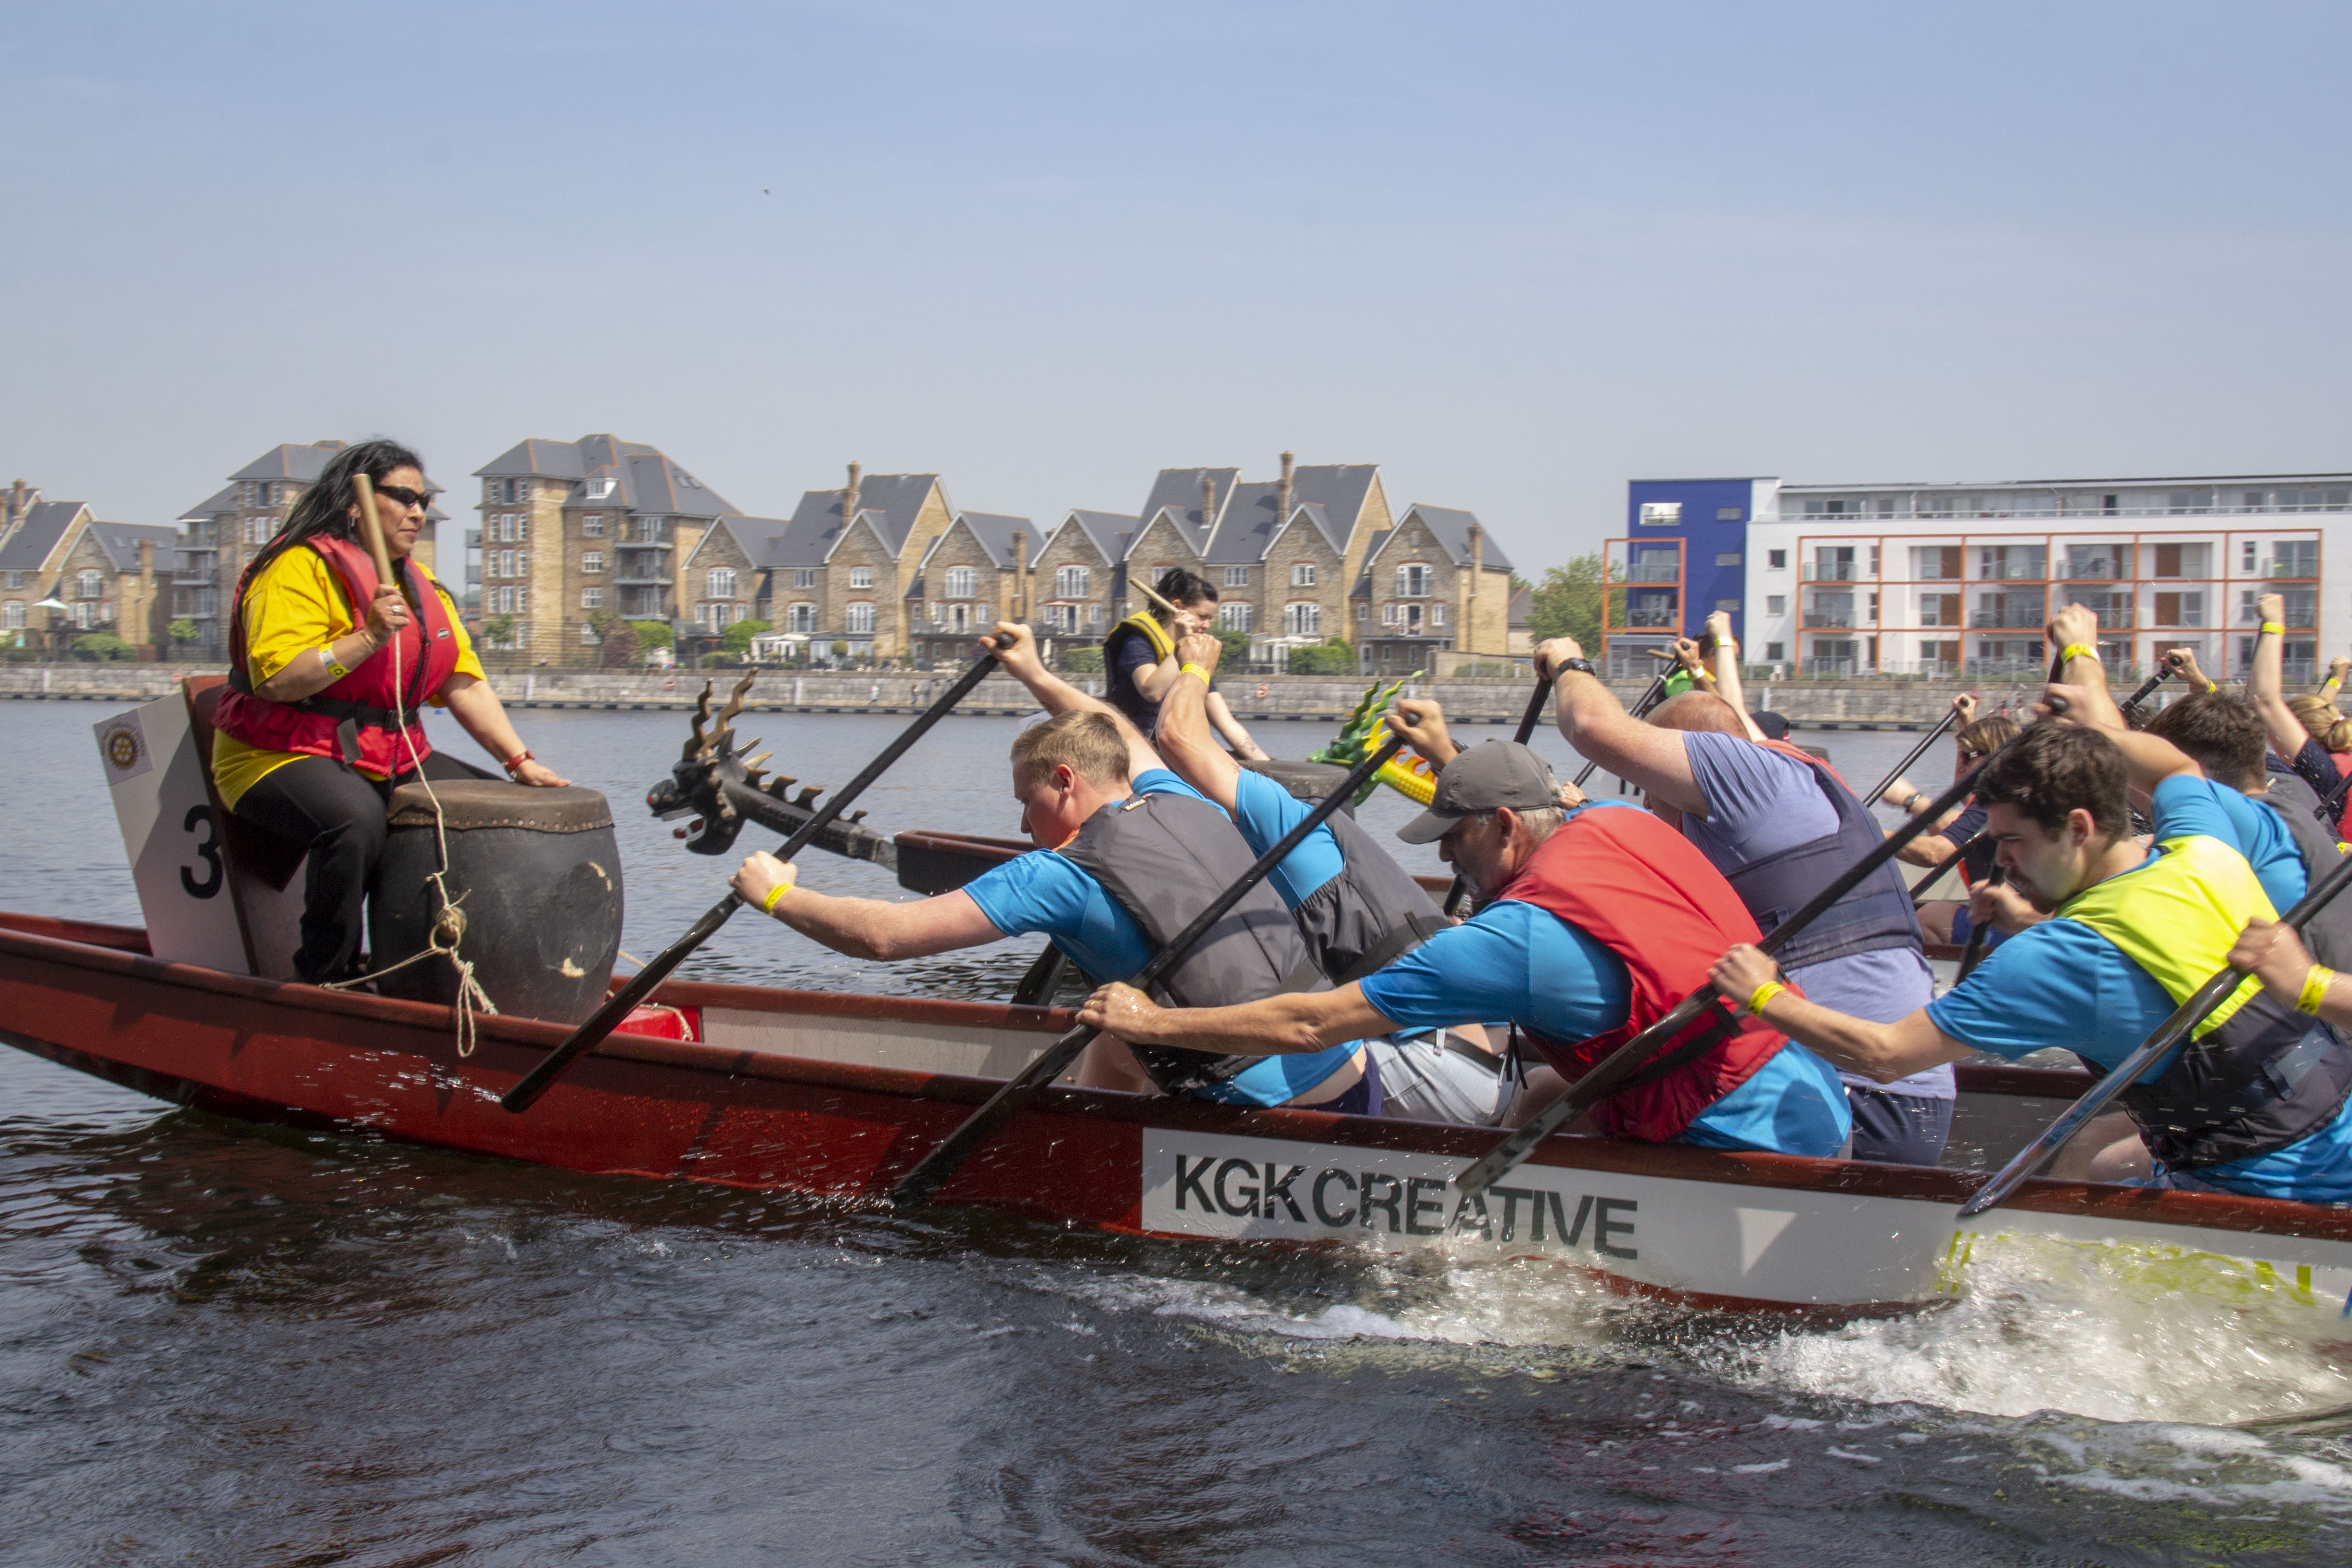 2018 Dragon Boat Challenge photos - 270518 60D 2433 Edited